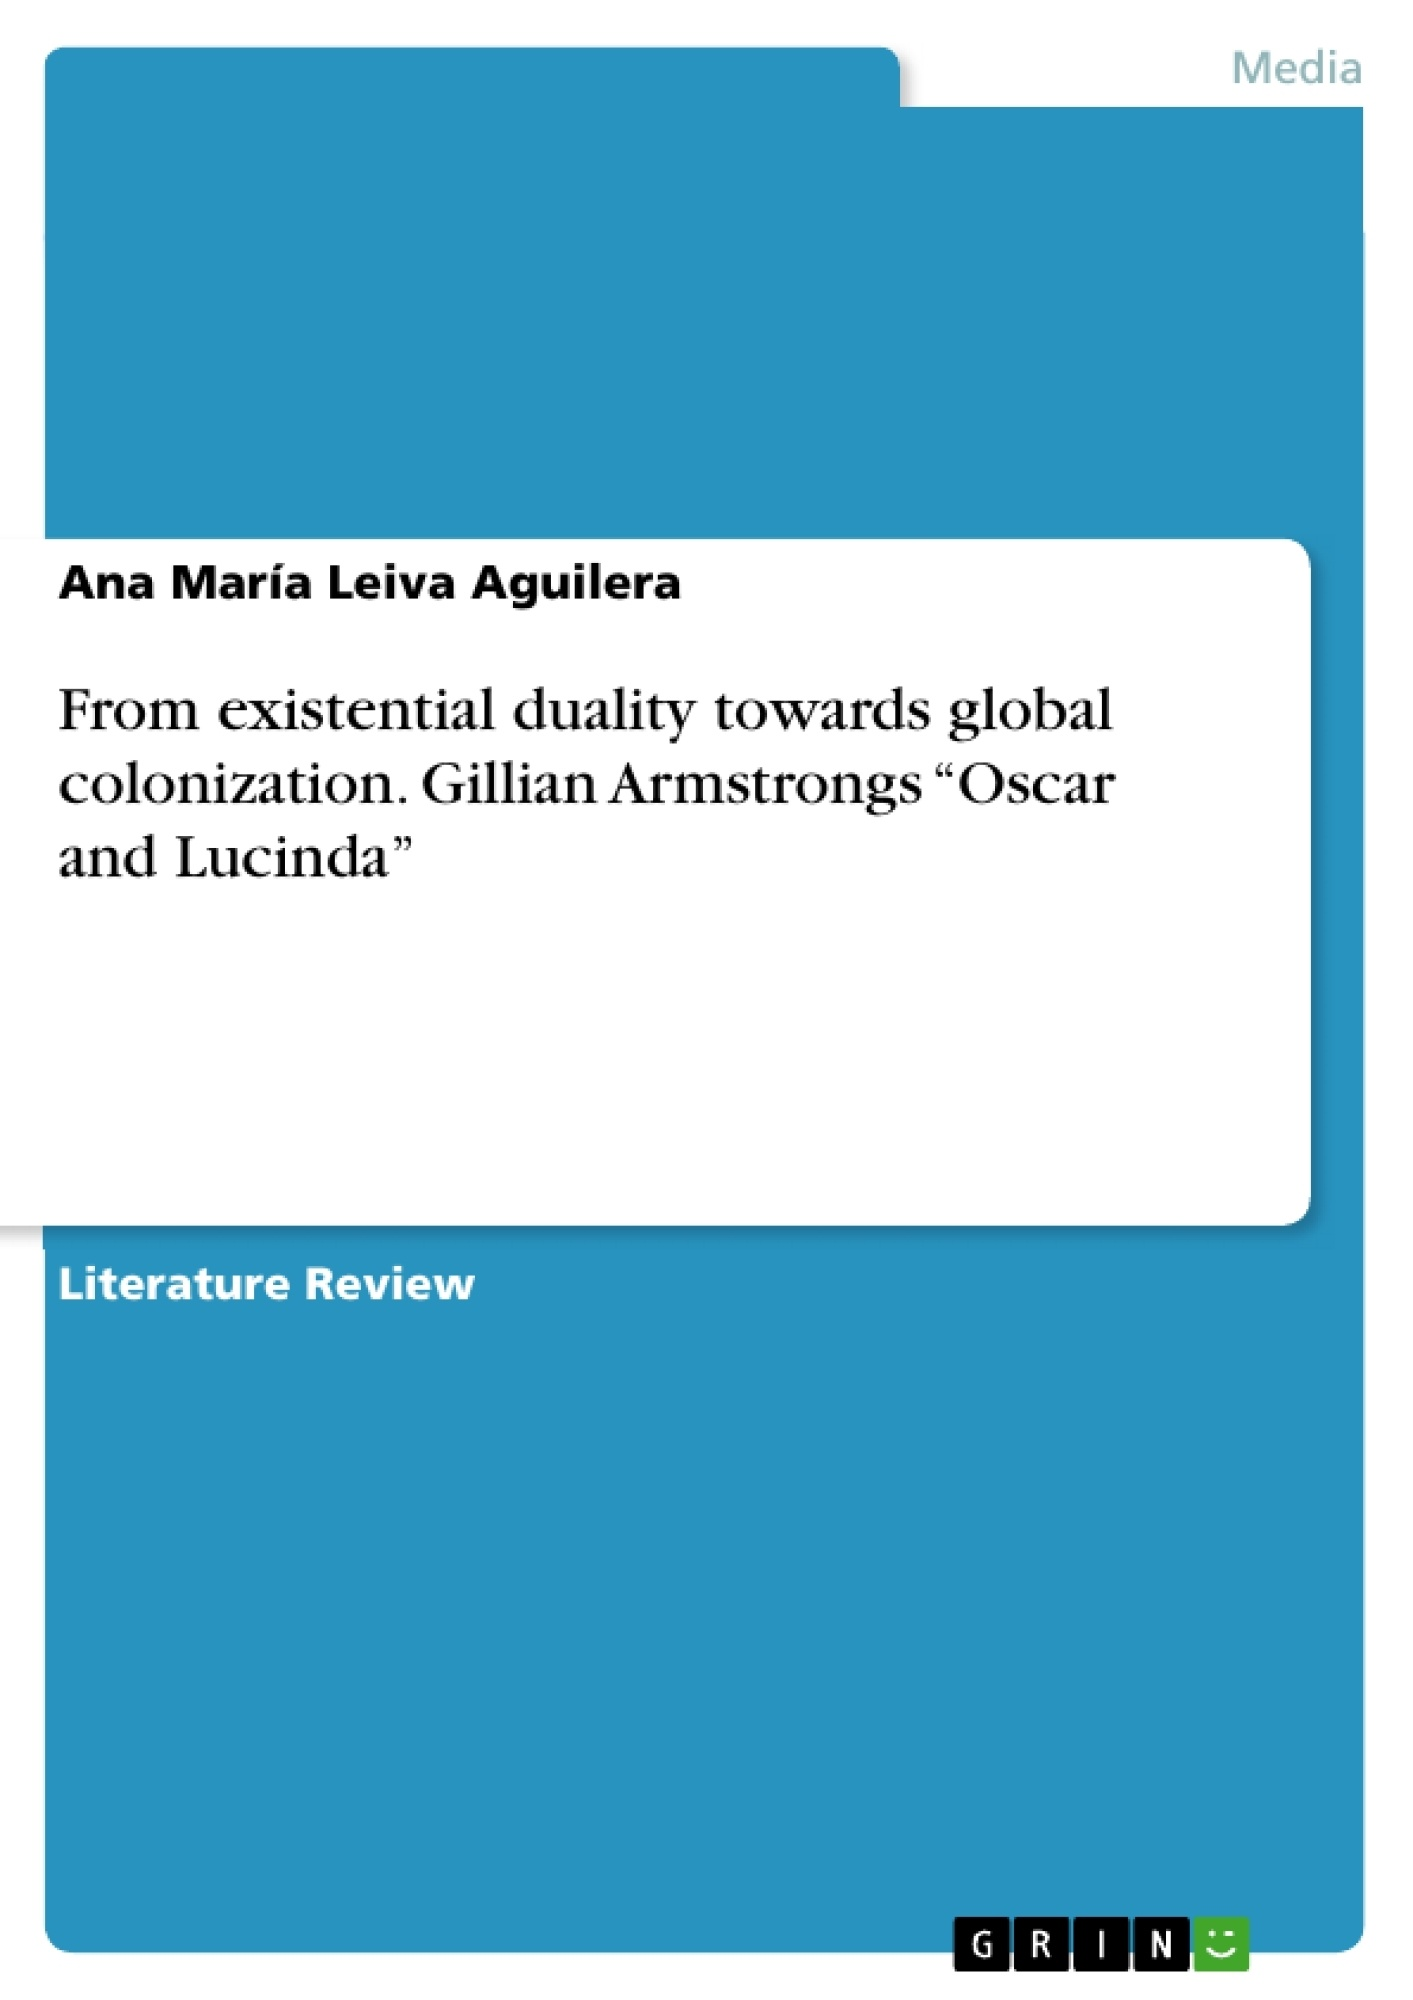 """Title: From existential duality towards global colonization. Gillian Armstrongs """"Oscar and Lucinda"""""""